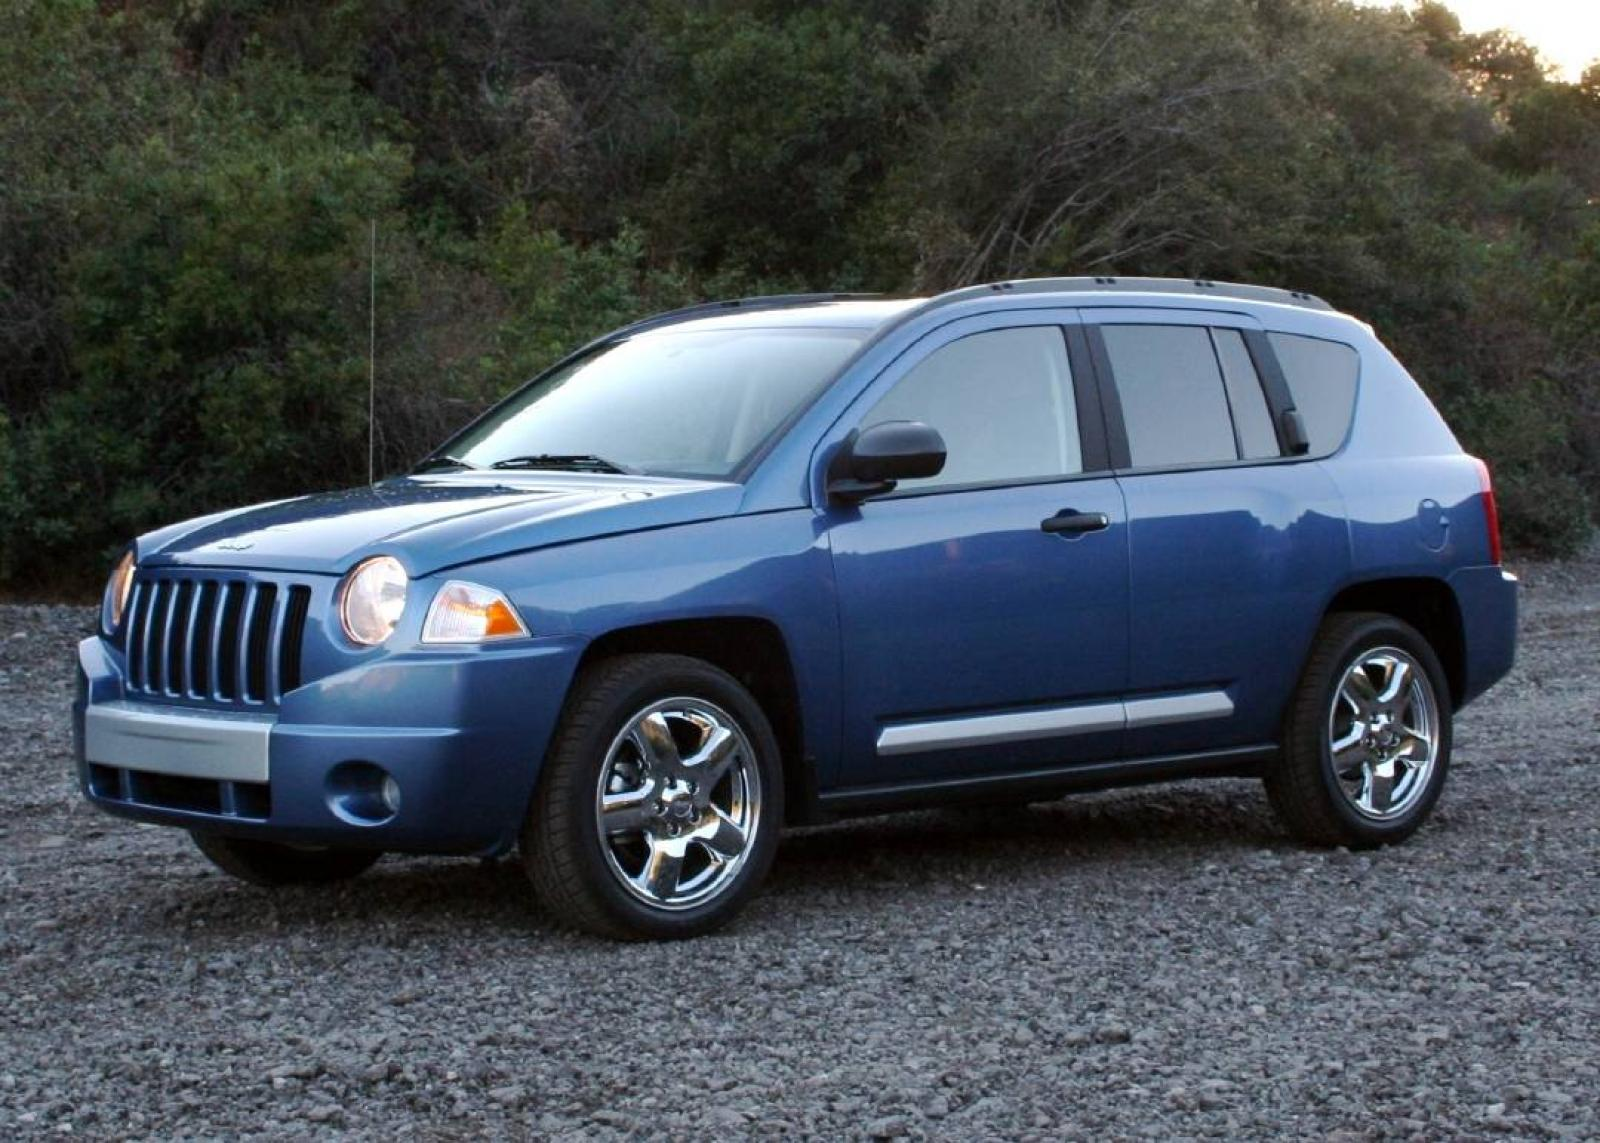 2007 Jeep Compass Information and photos ZombieDrive – Jeep Compass 2006 Fuse Box